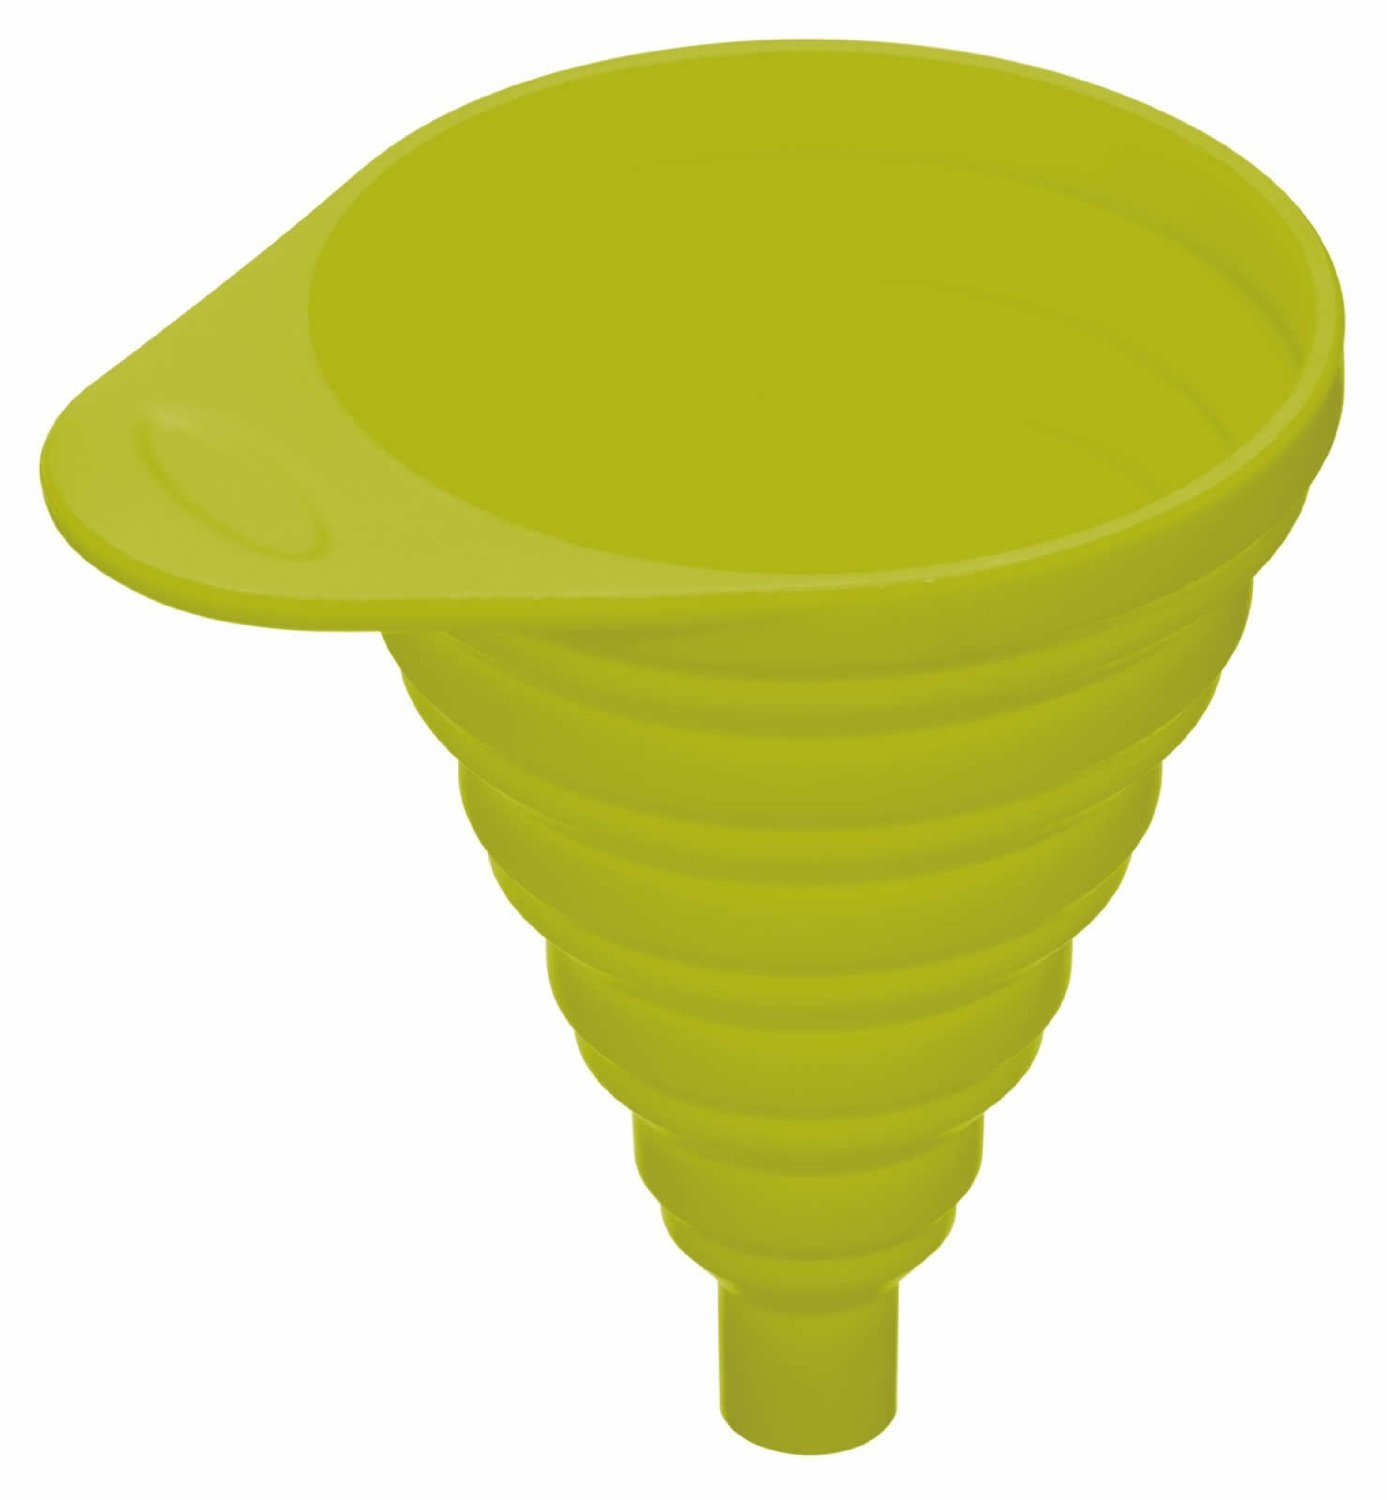 Yonger Foldable Silicone Funnel Collapsible Filter Funnel Resistant Hopper for Liquid Transfer